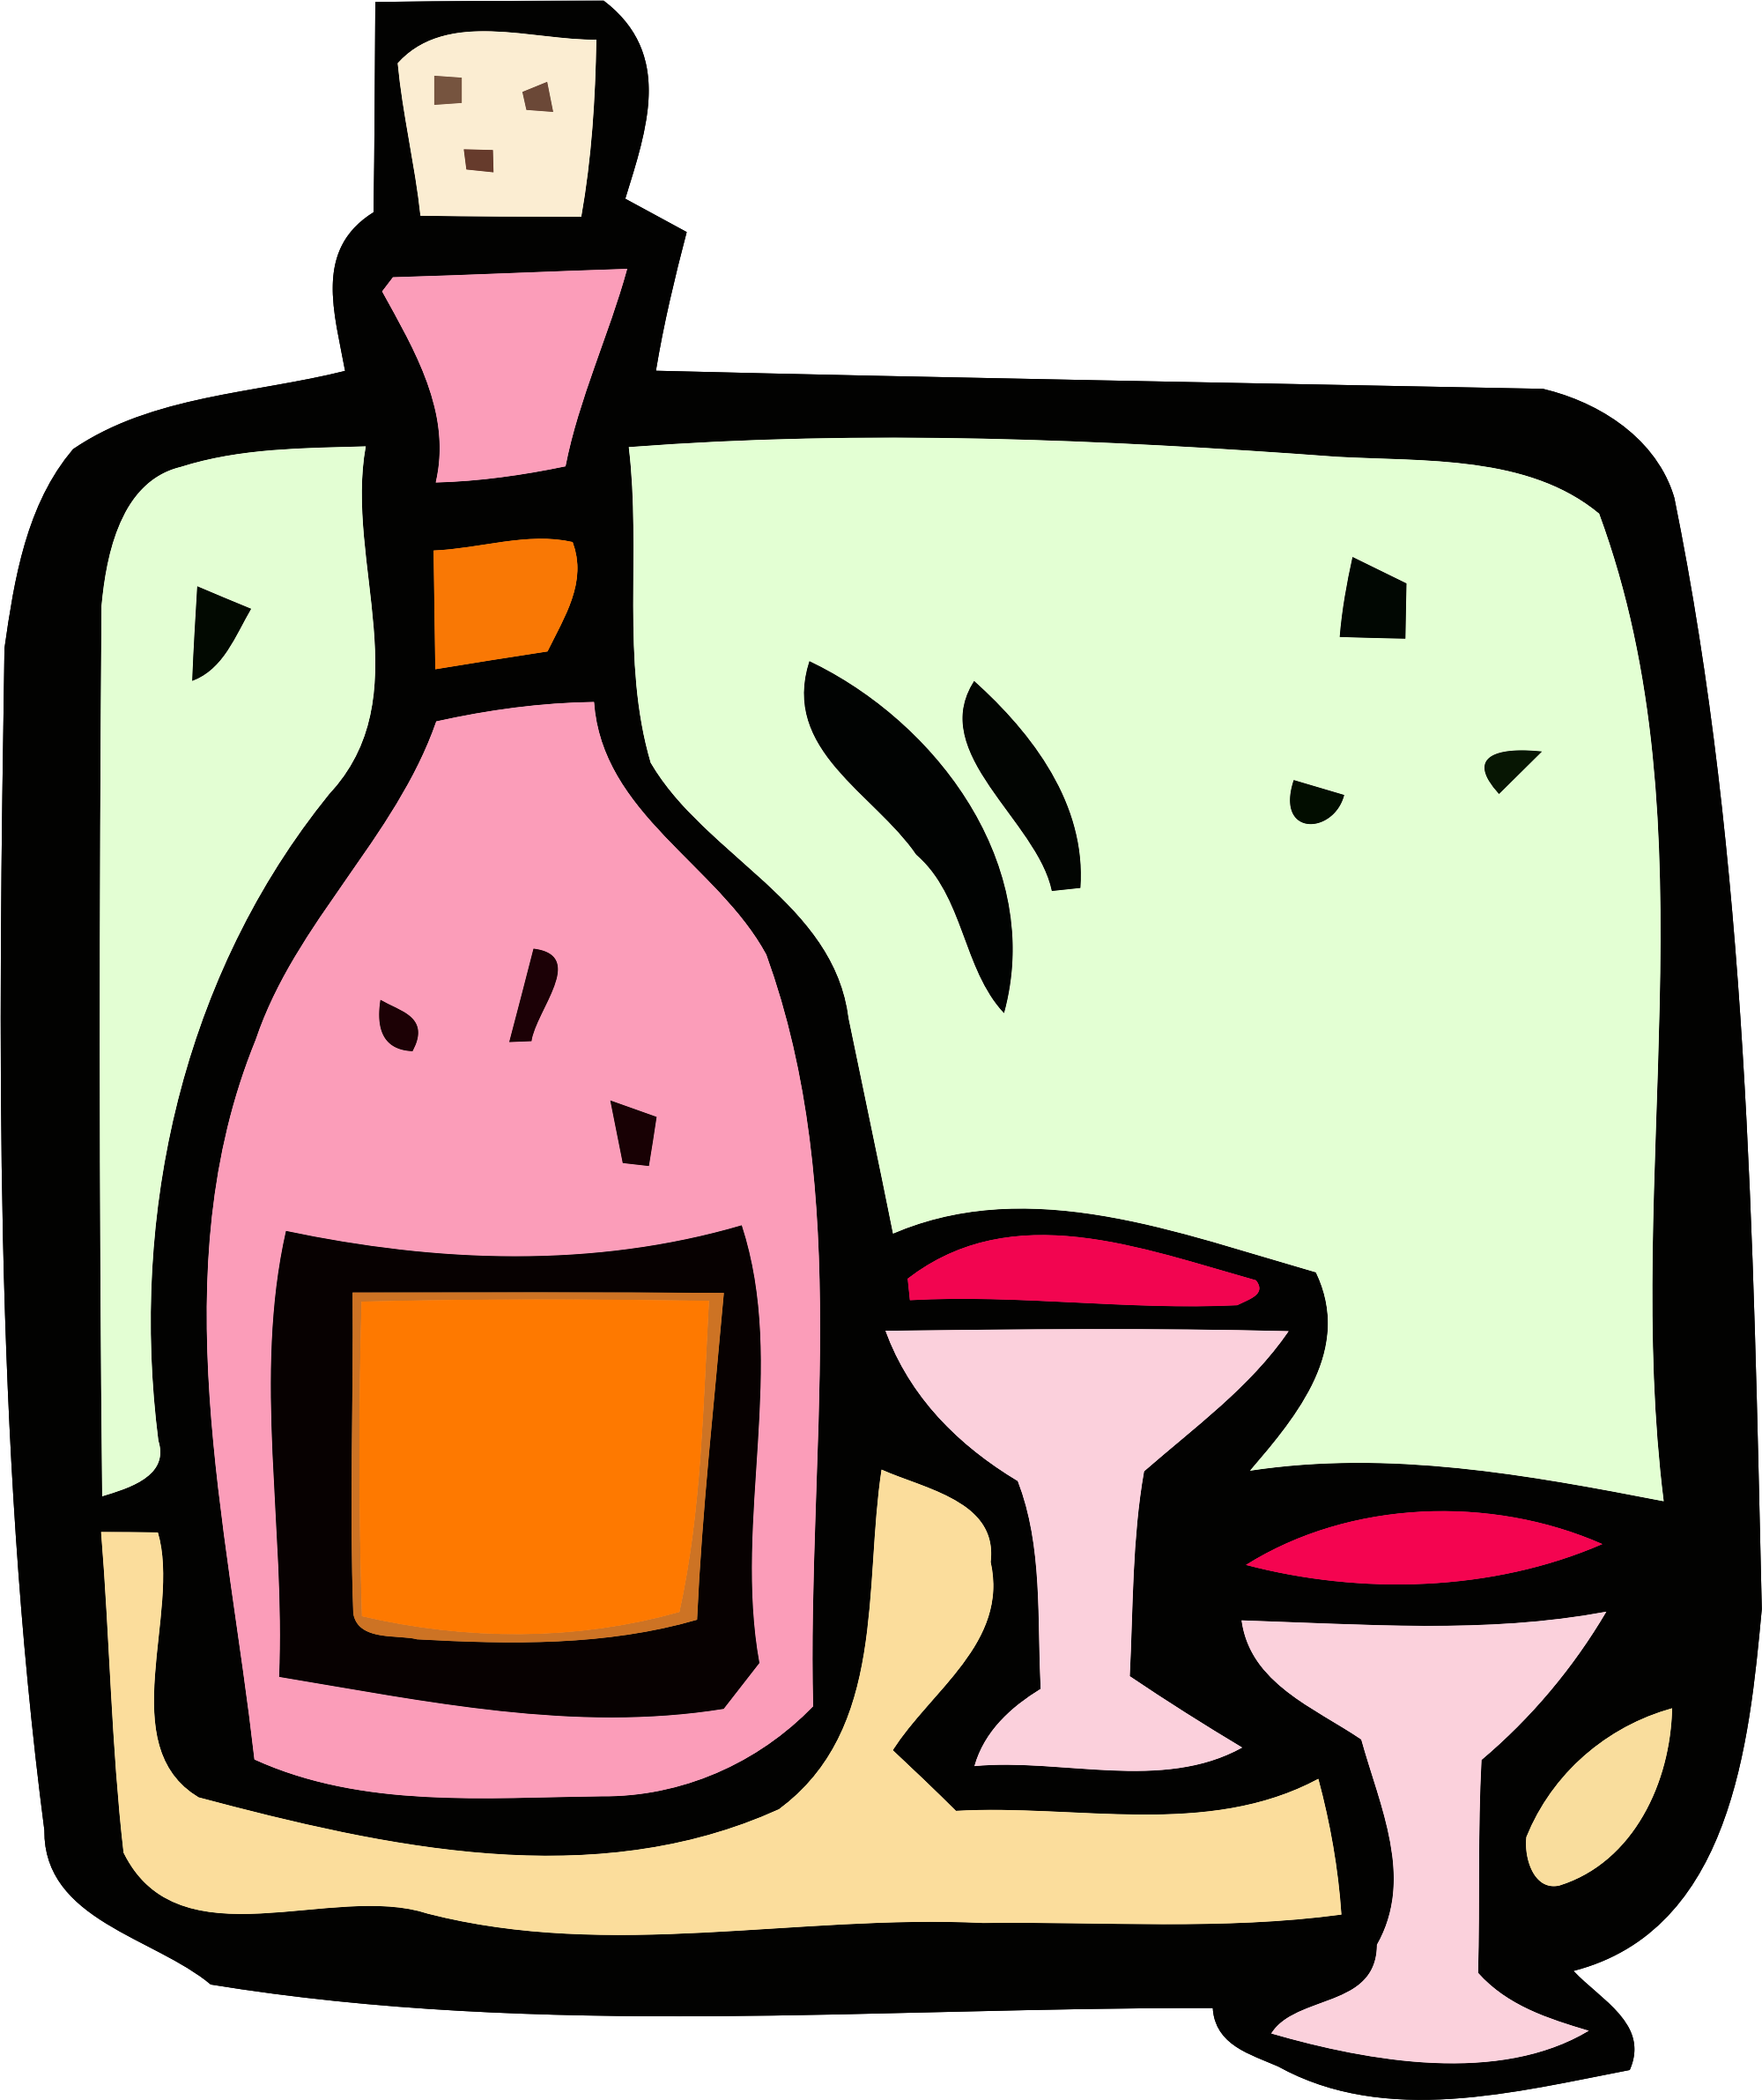 Food and drink icon - wine by Firkin